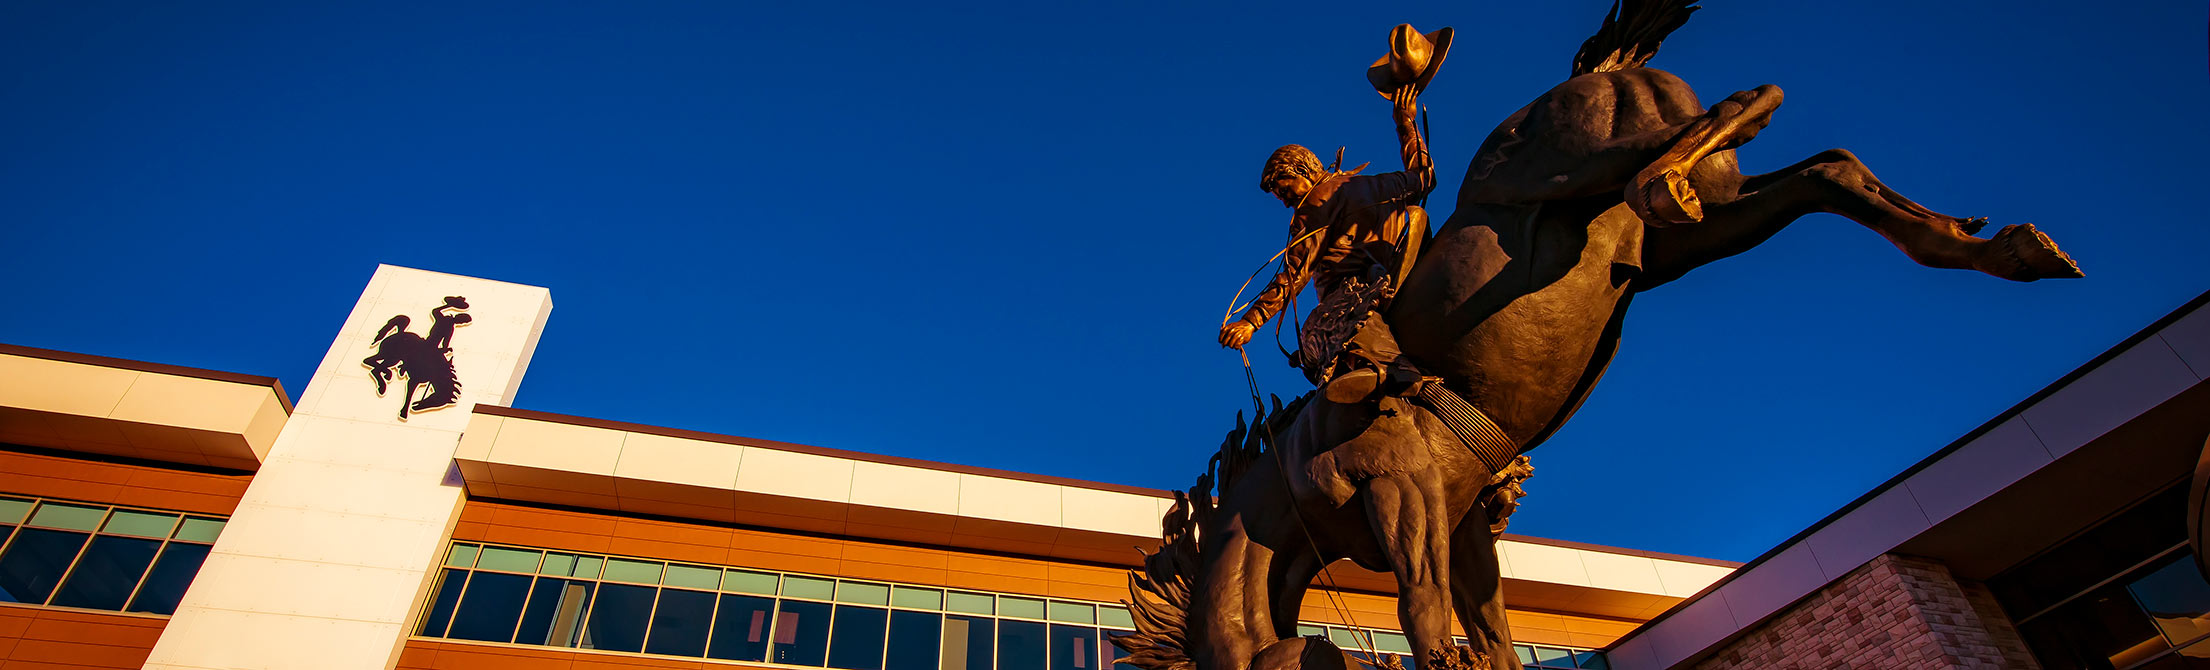 Image of Wyoming Cowboy statue